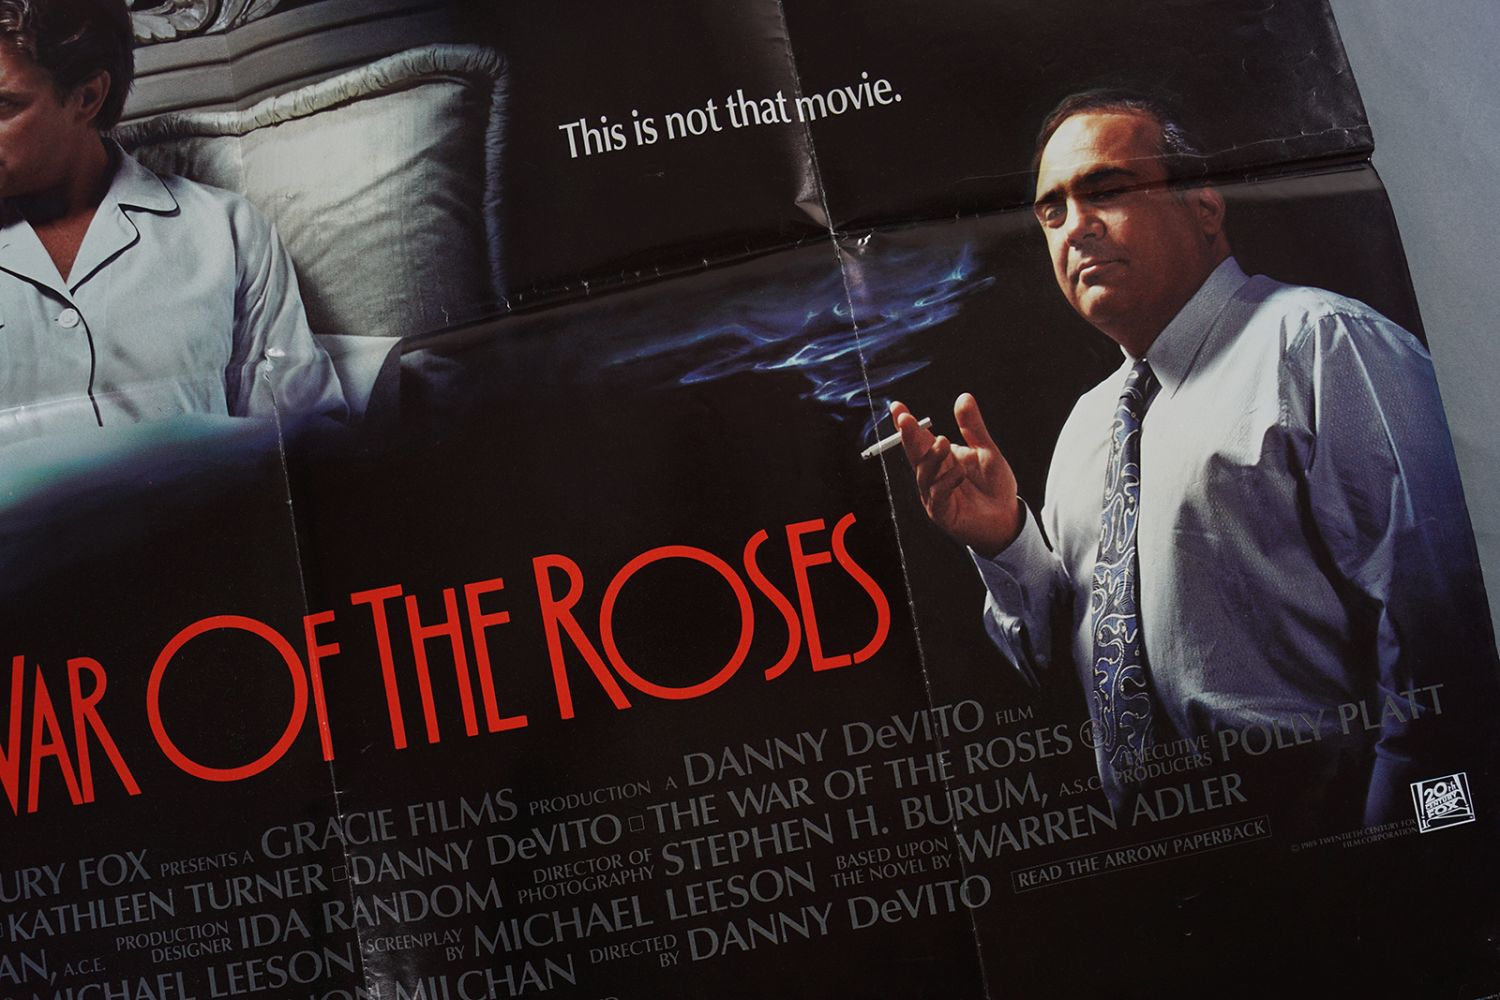 THE WAR OF THE ROSES - Image 3 of 3